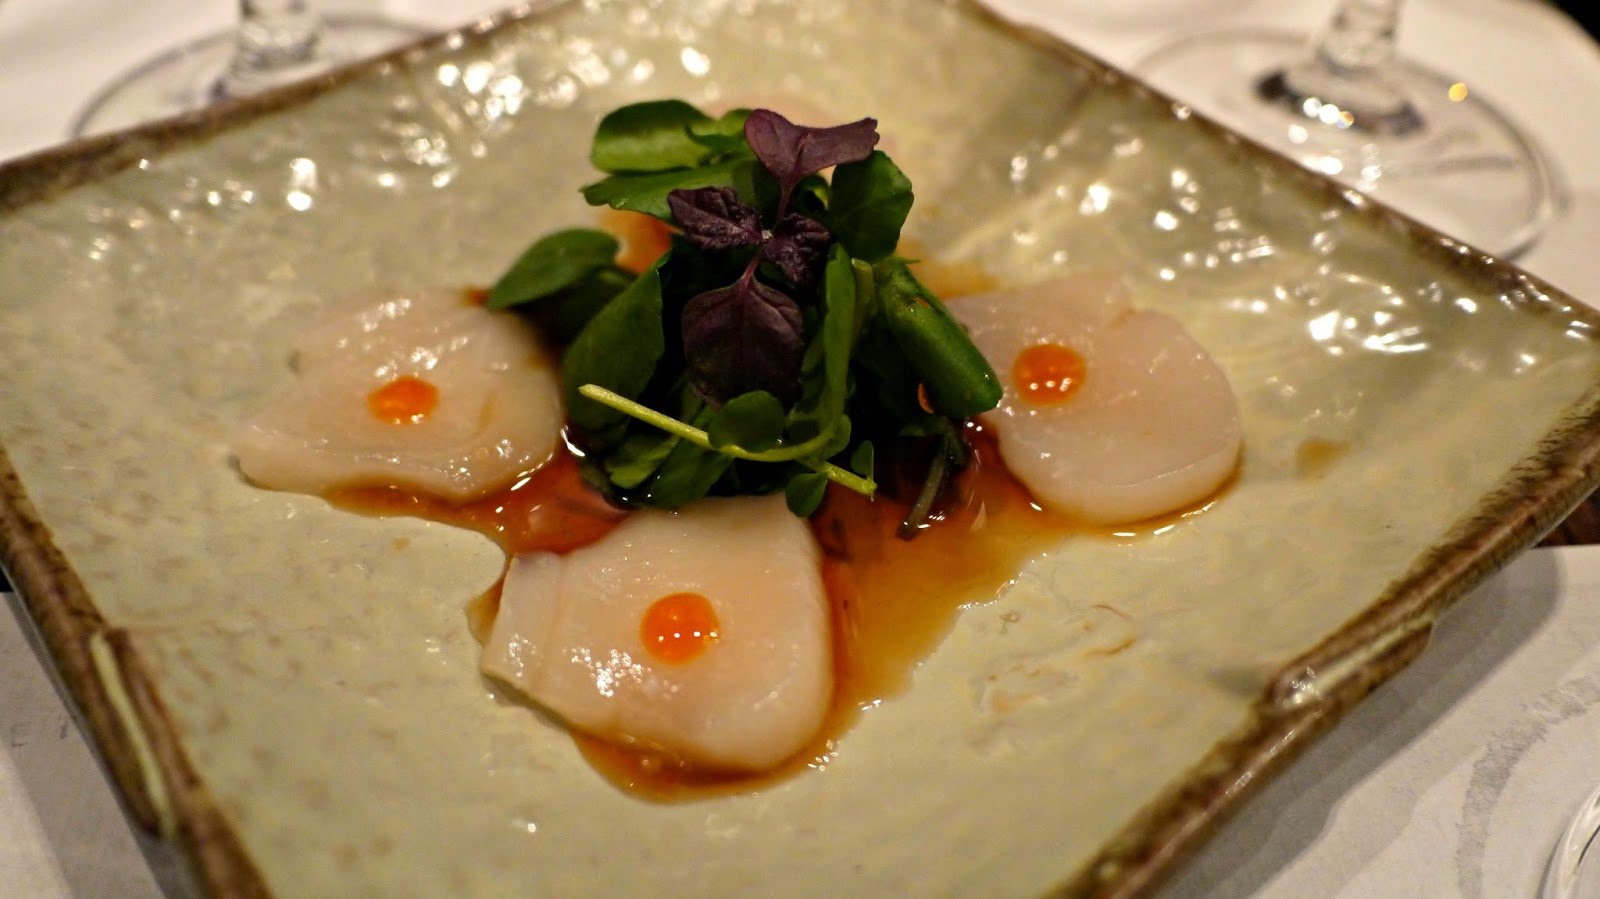 Chisou Alaskan dive caught scallop carpaccio, dressed with yuzukosho and ponzo sauce